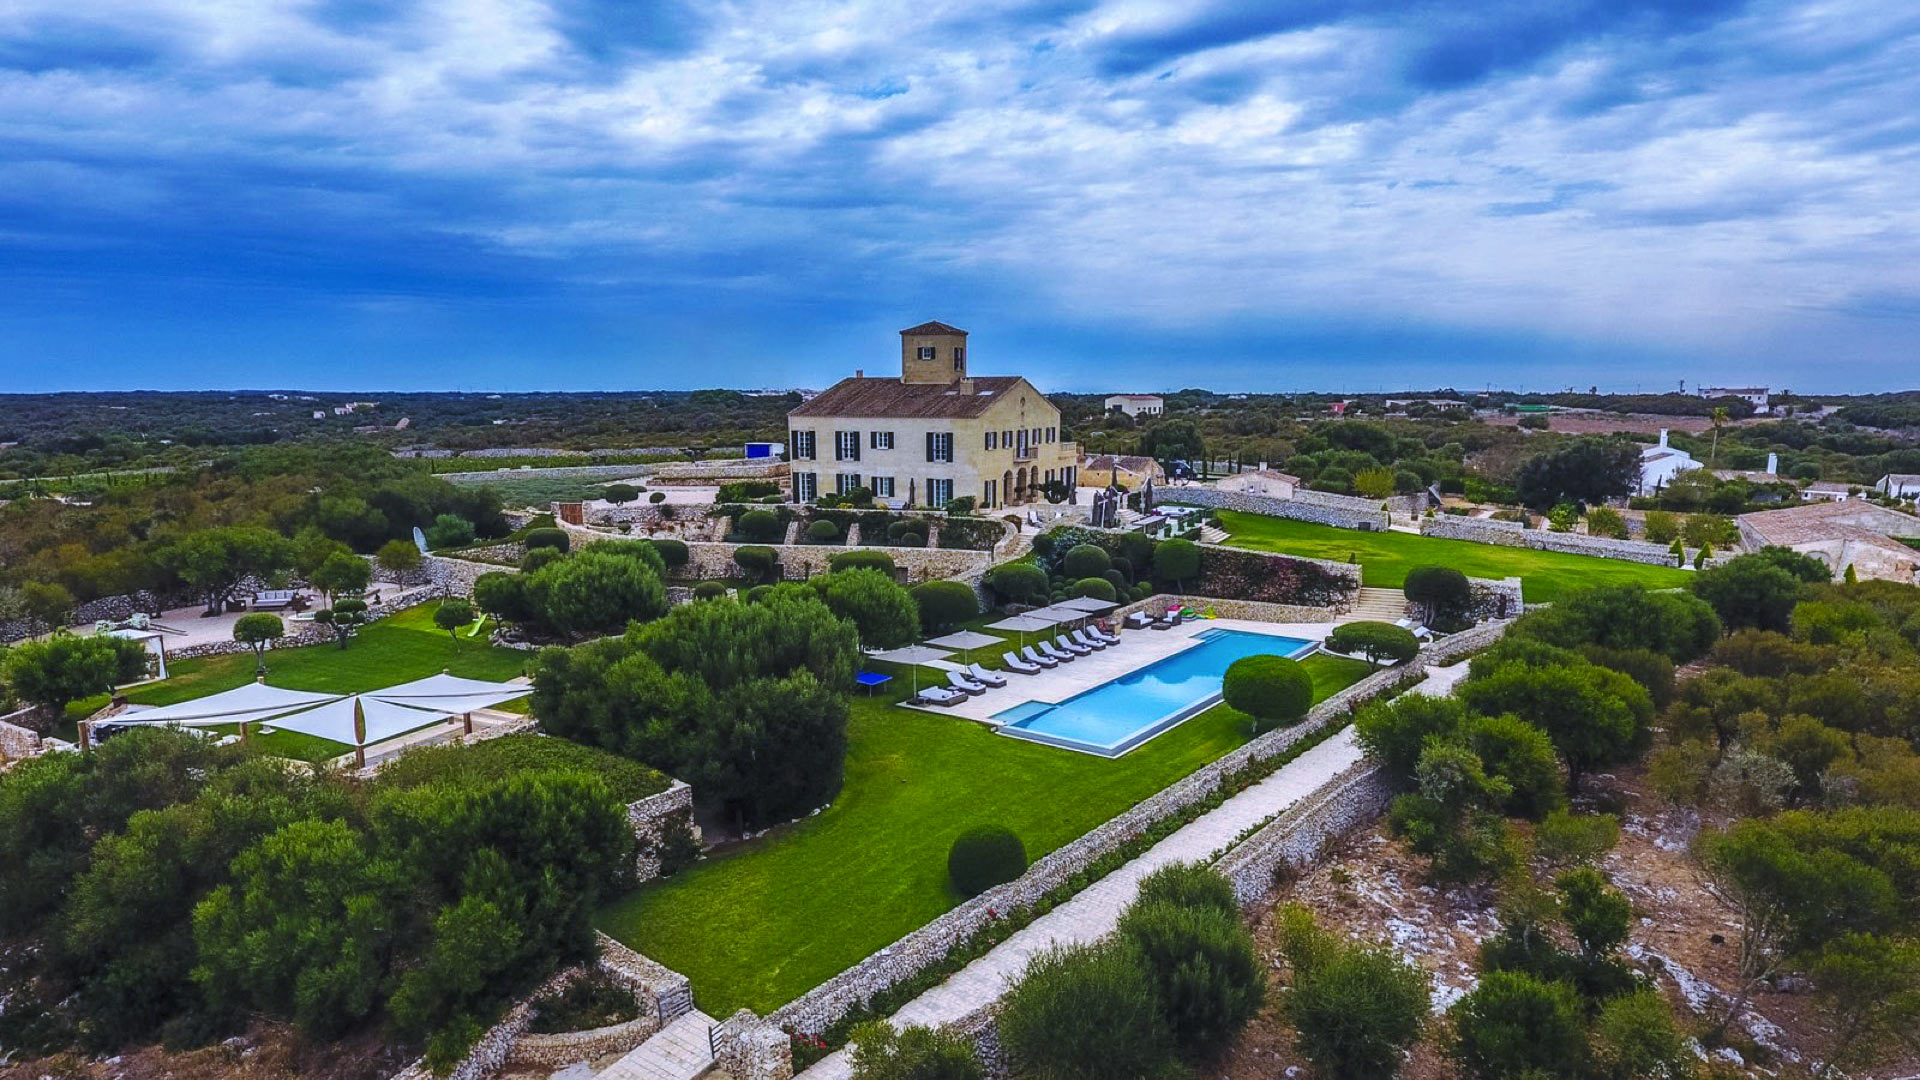 Holiday villa Sant Climent in Menorca, spain